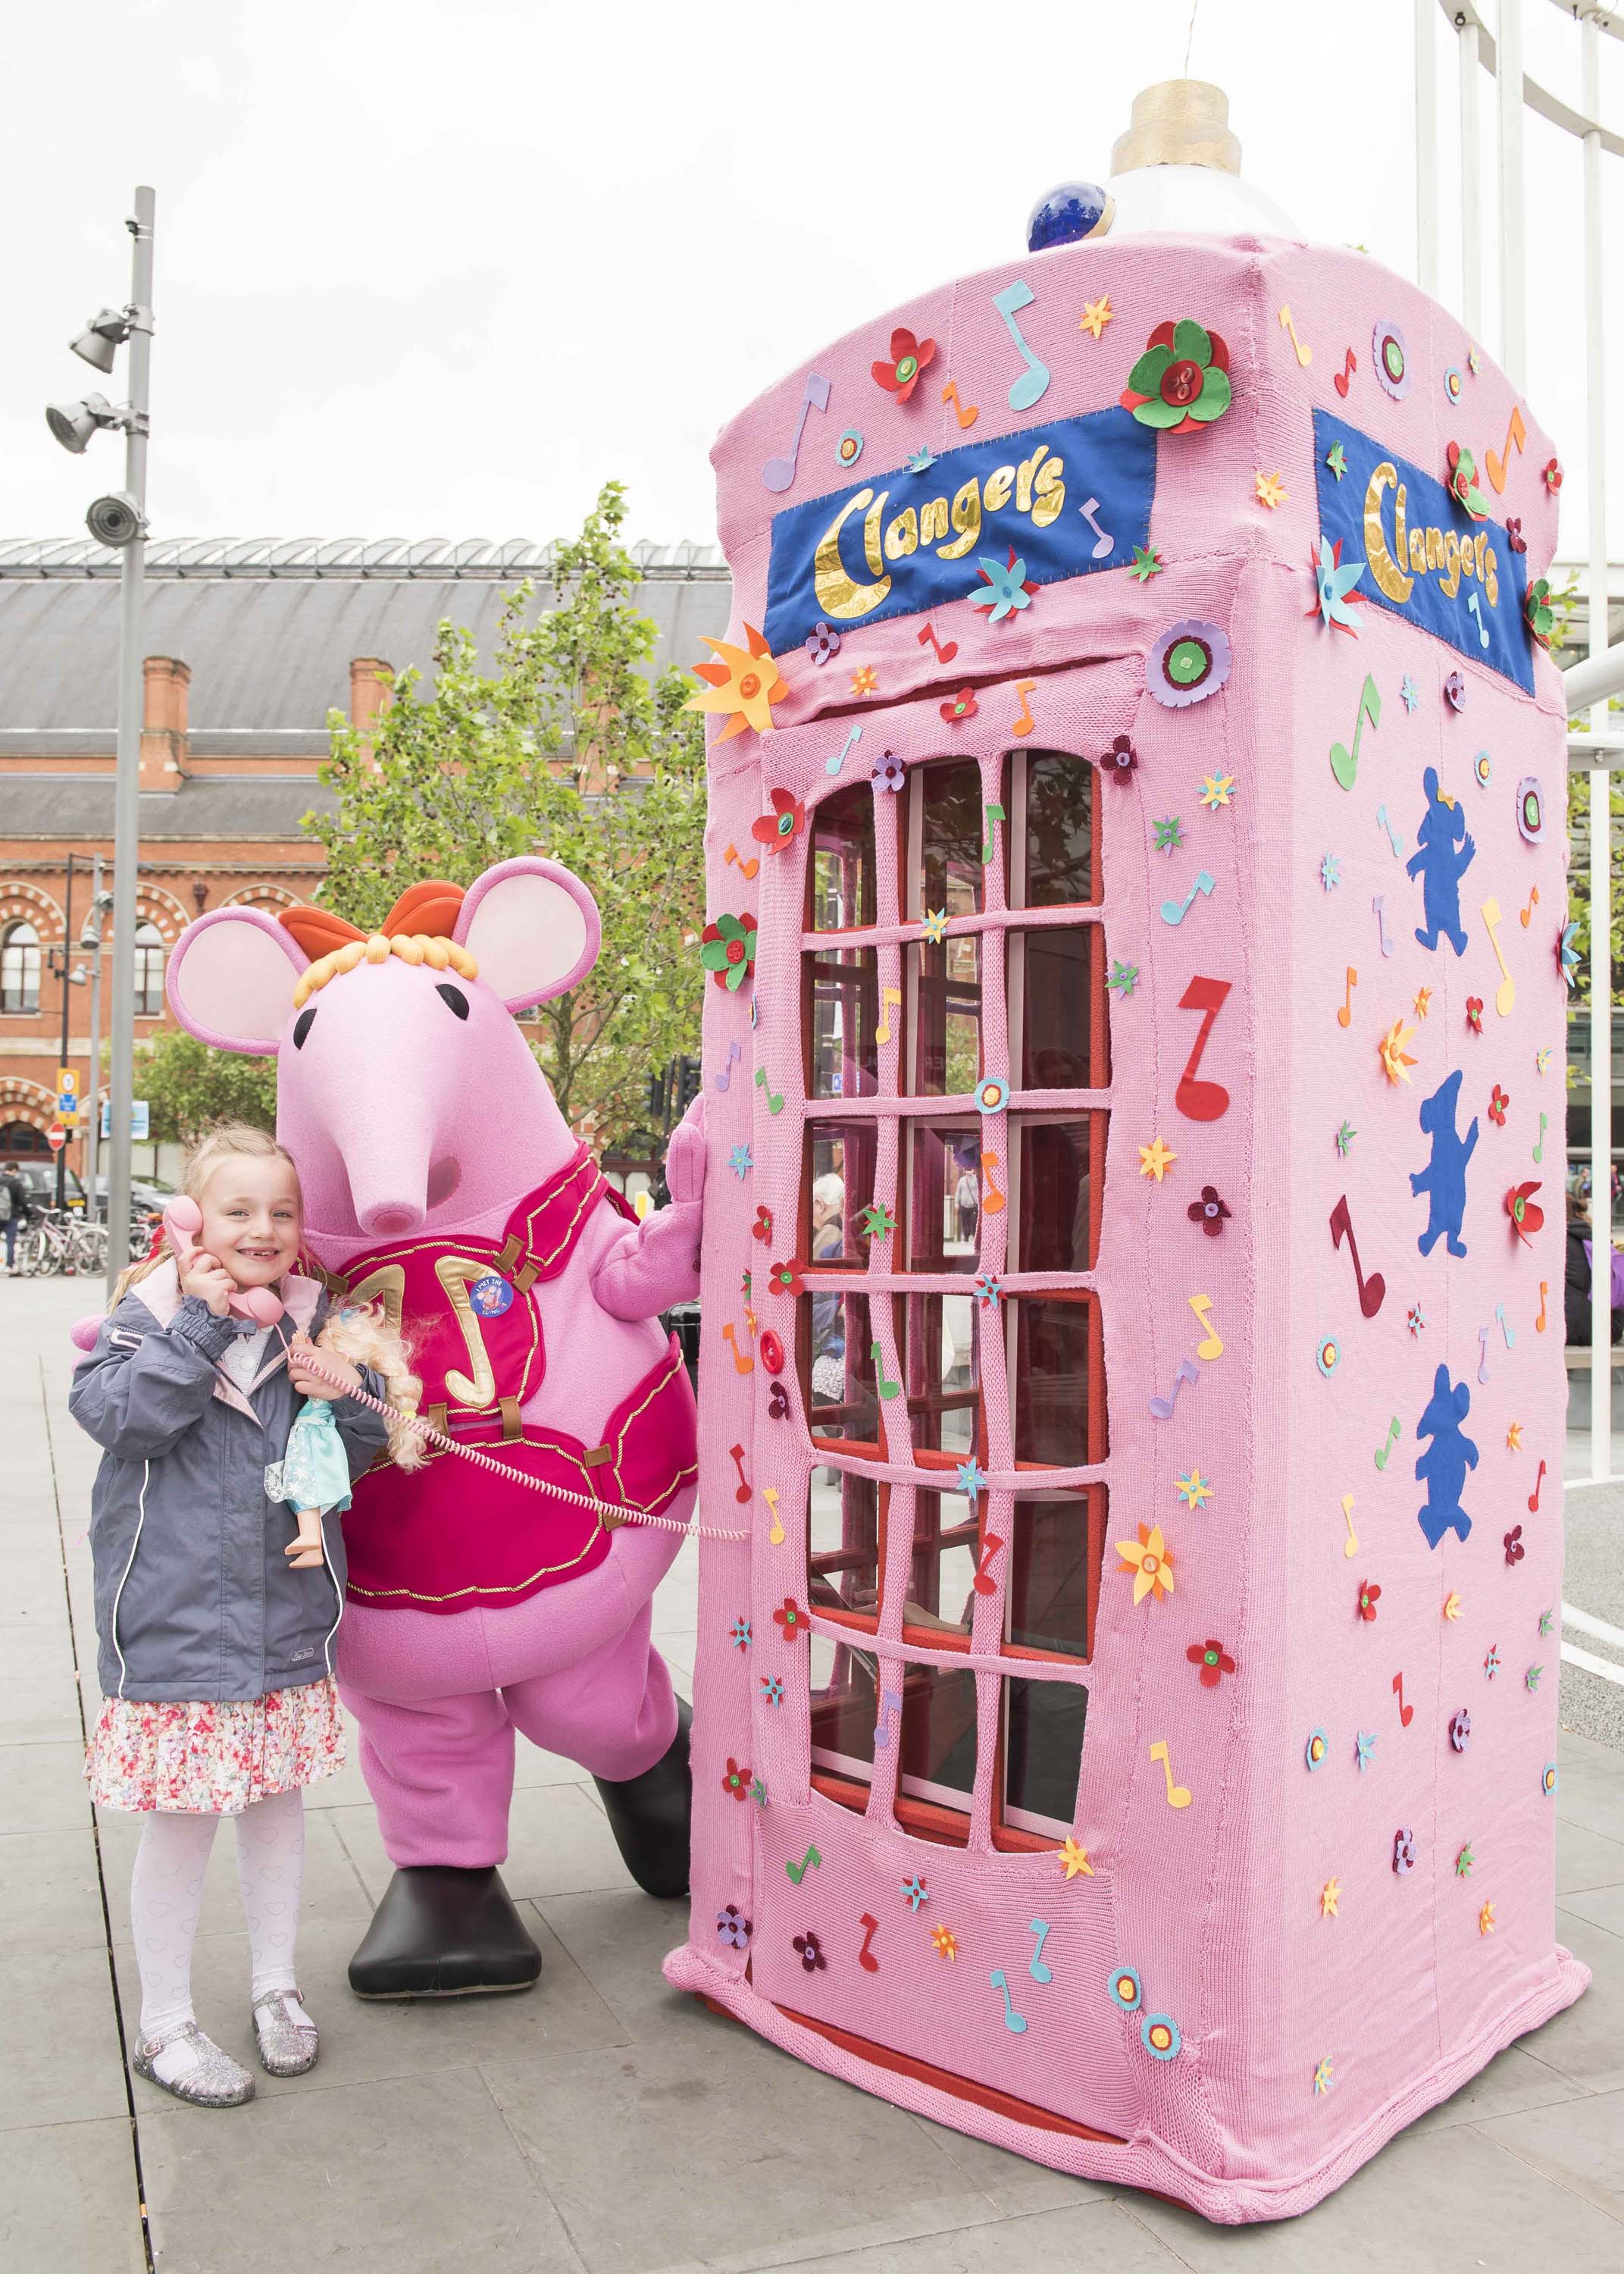 Call the Clangers event in King's Cross